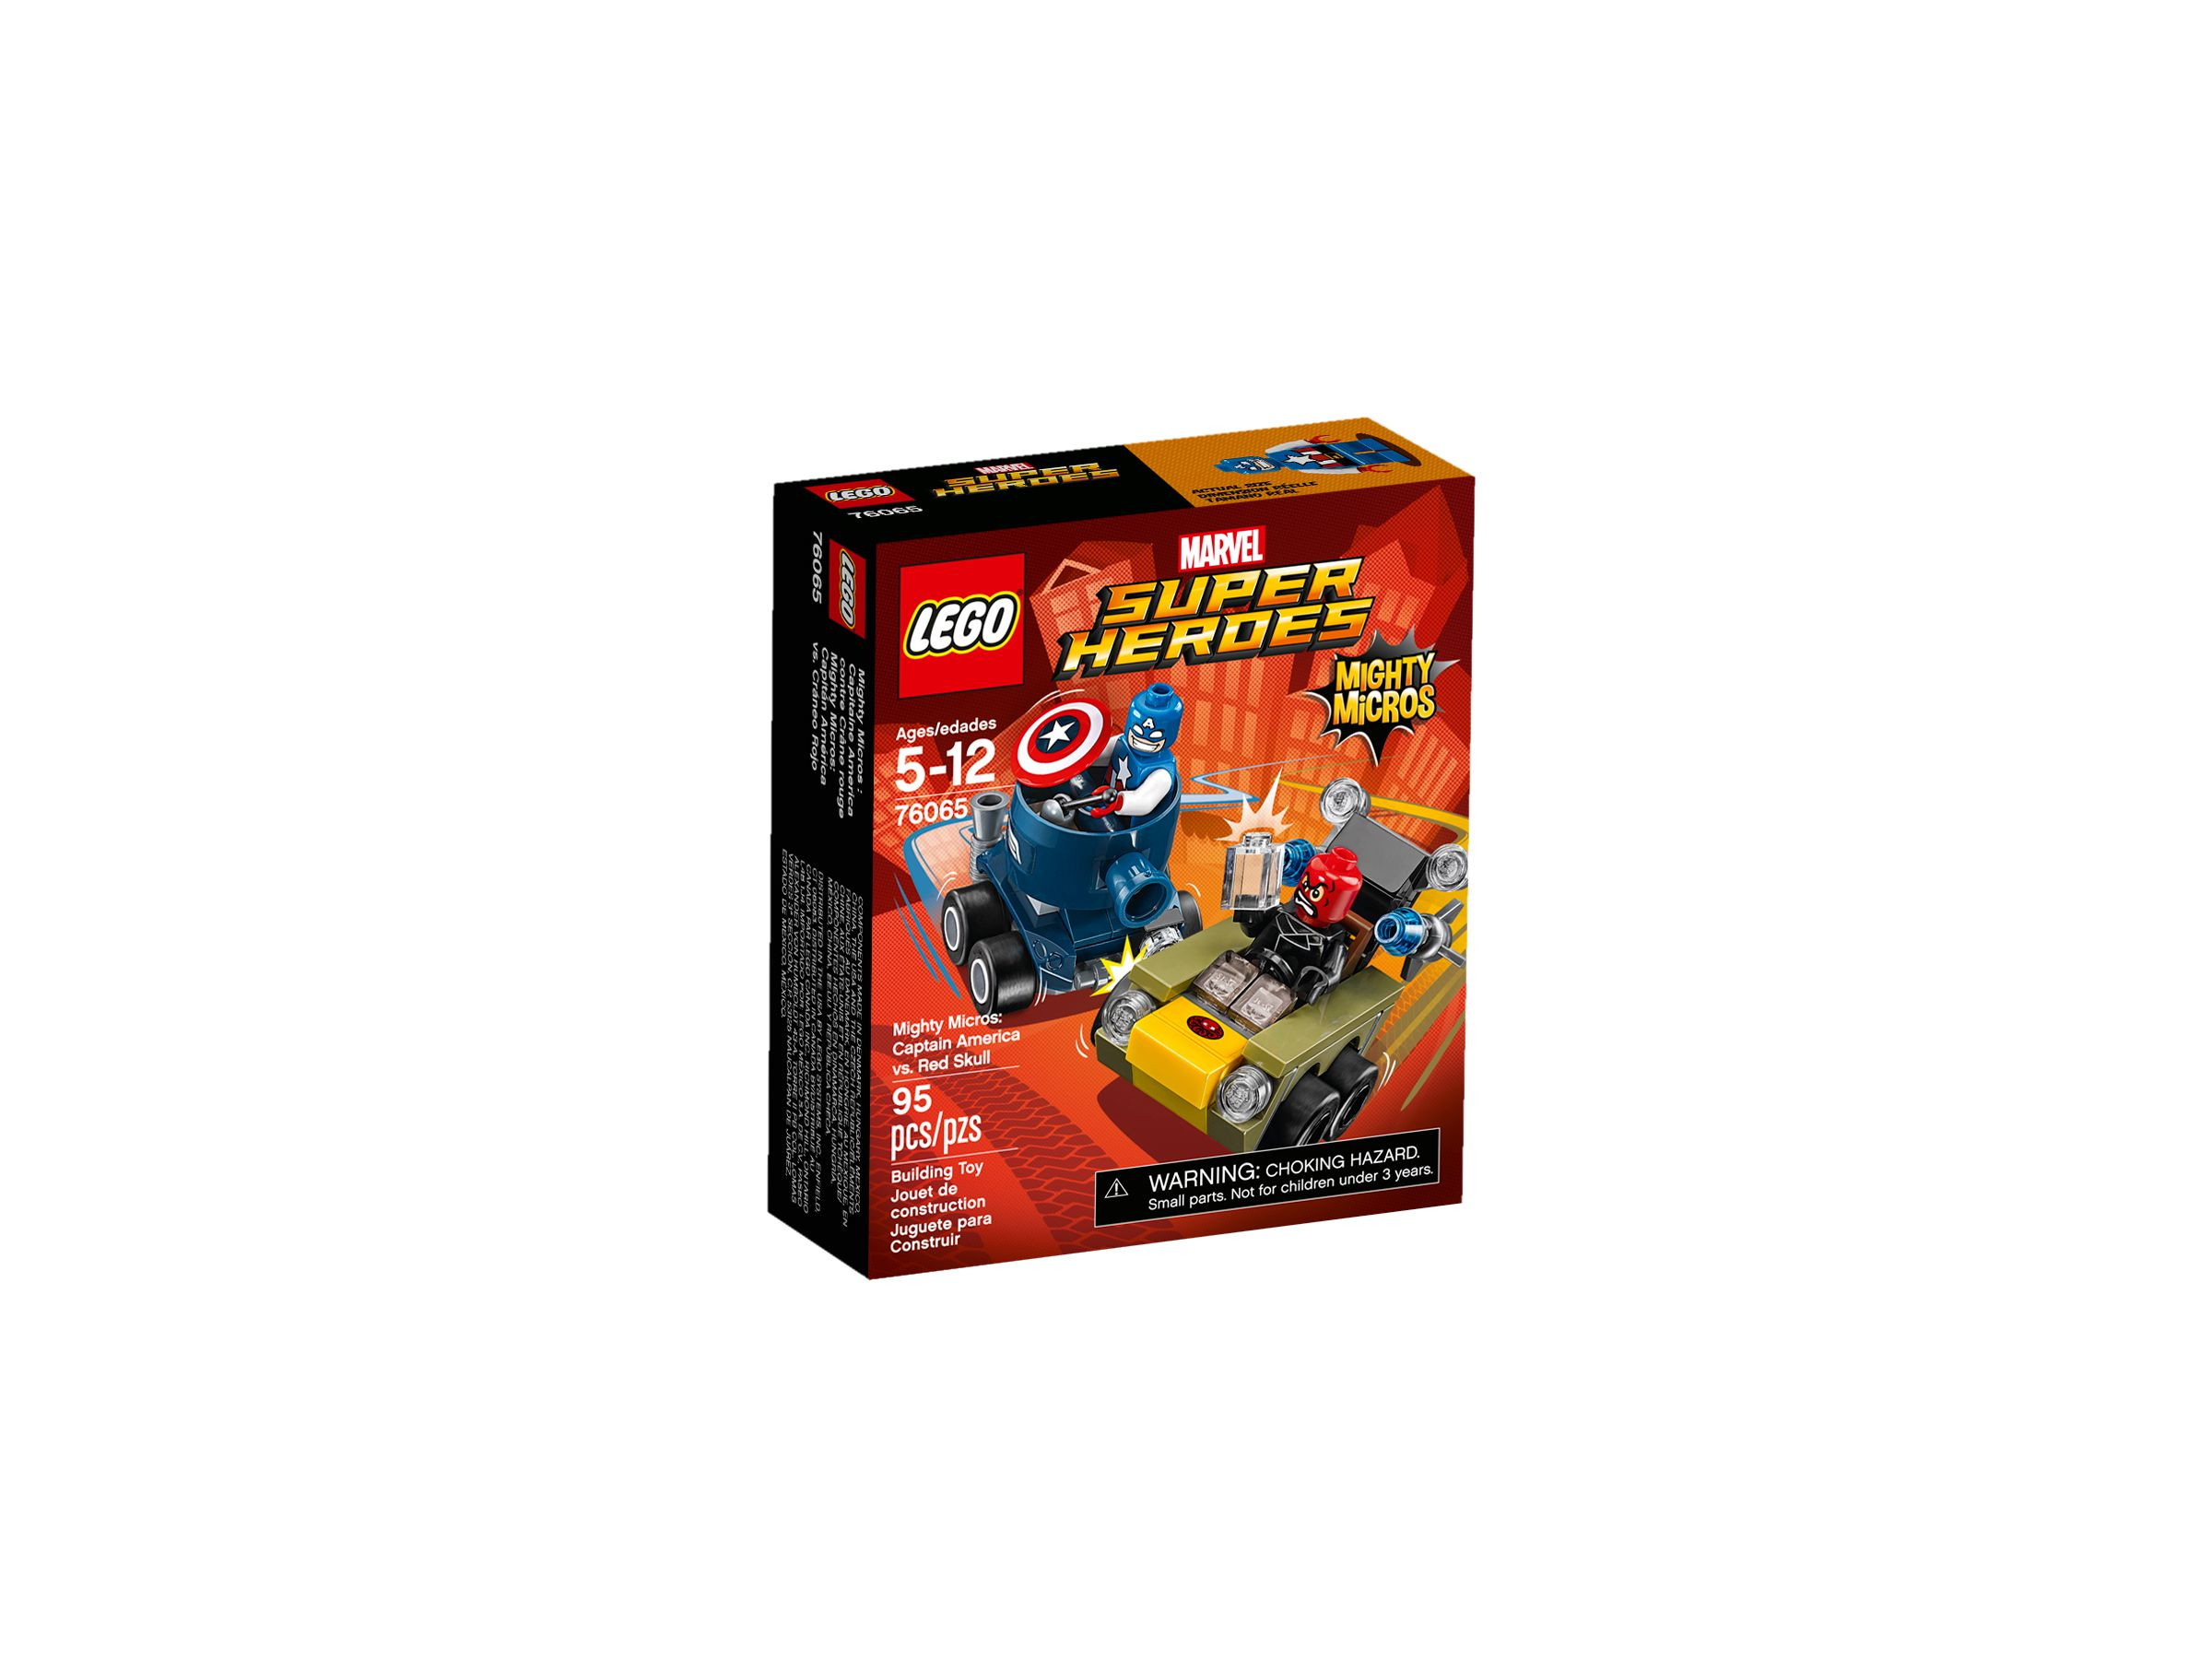 LEGO Super Heroes 76065 Mighty Micros: Captain America vs. Red Skull LEGO_76065_alt1.jpg